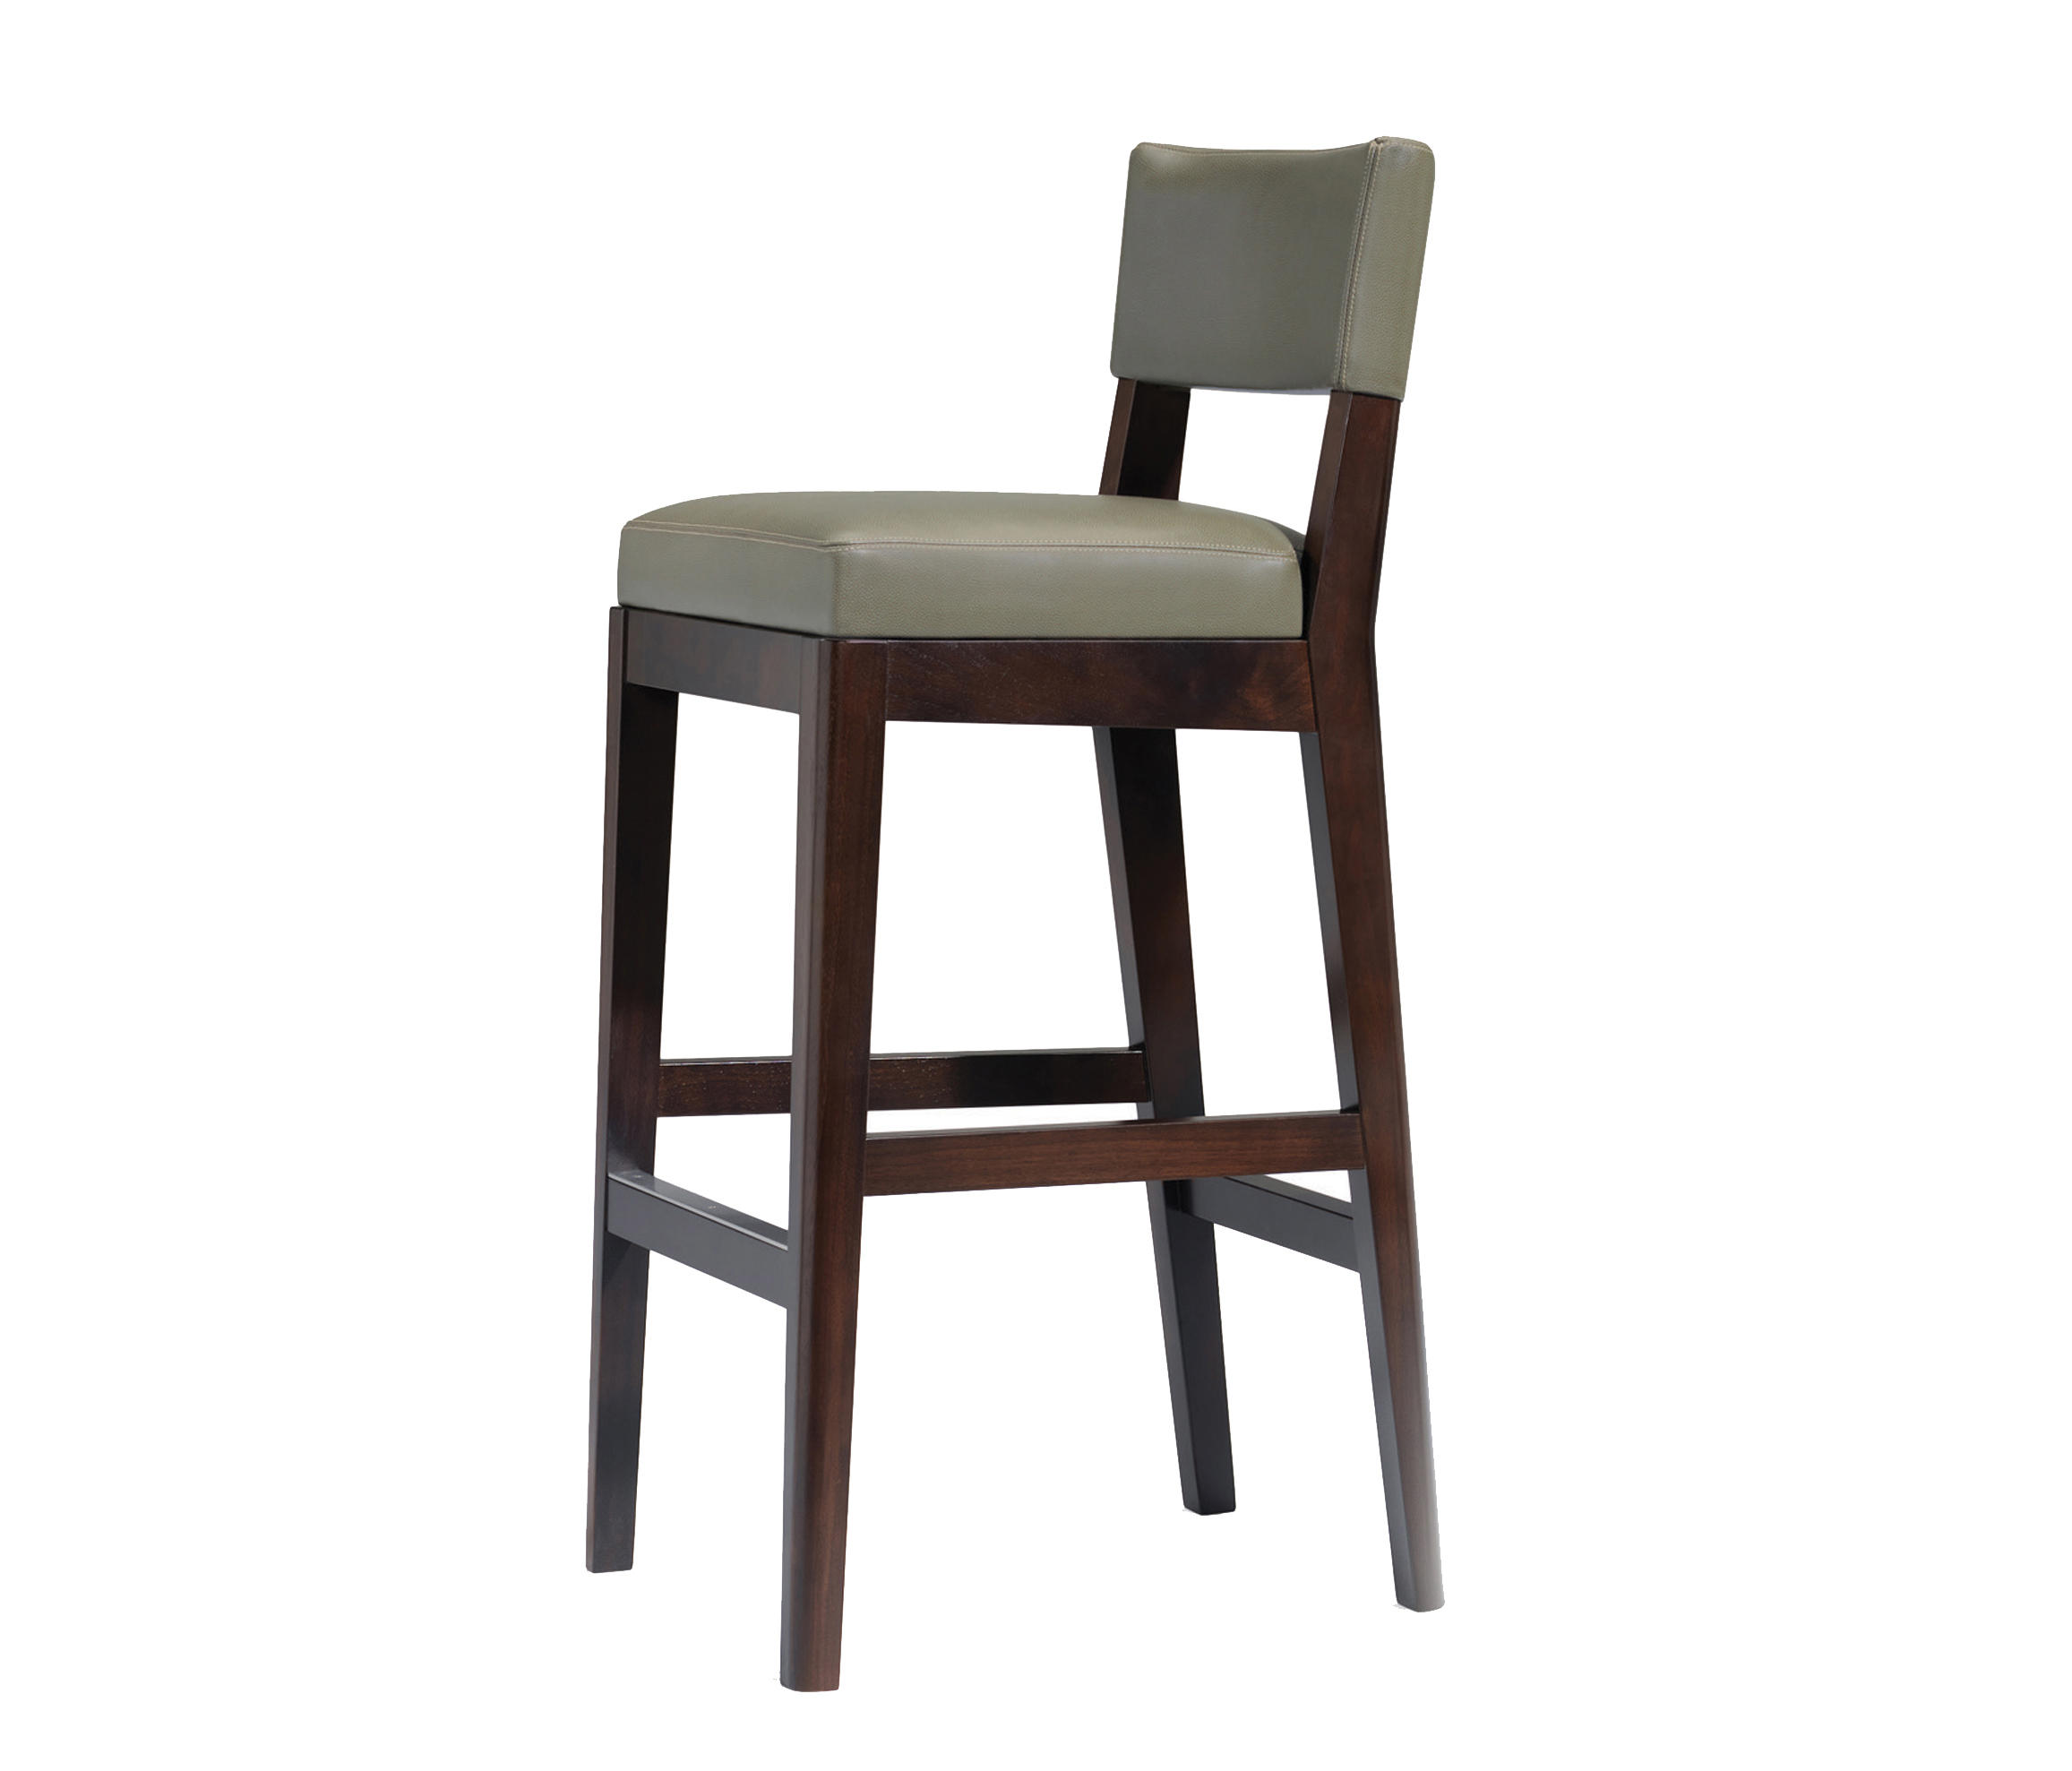 Cadet Bar Stools By Altura Furniture | Bar Stools ...